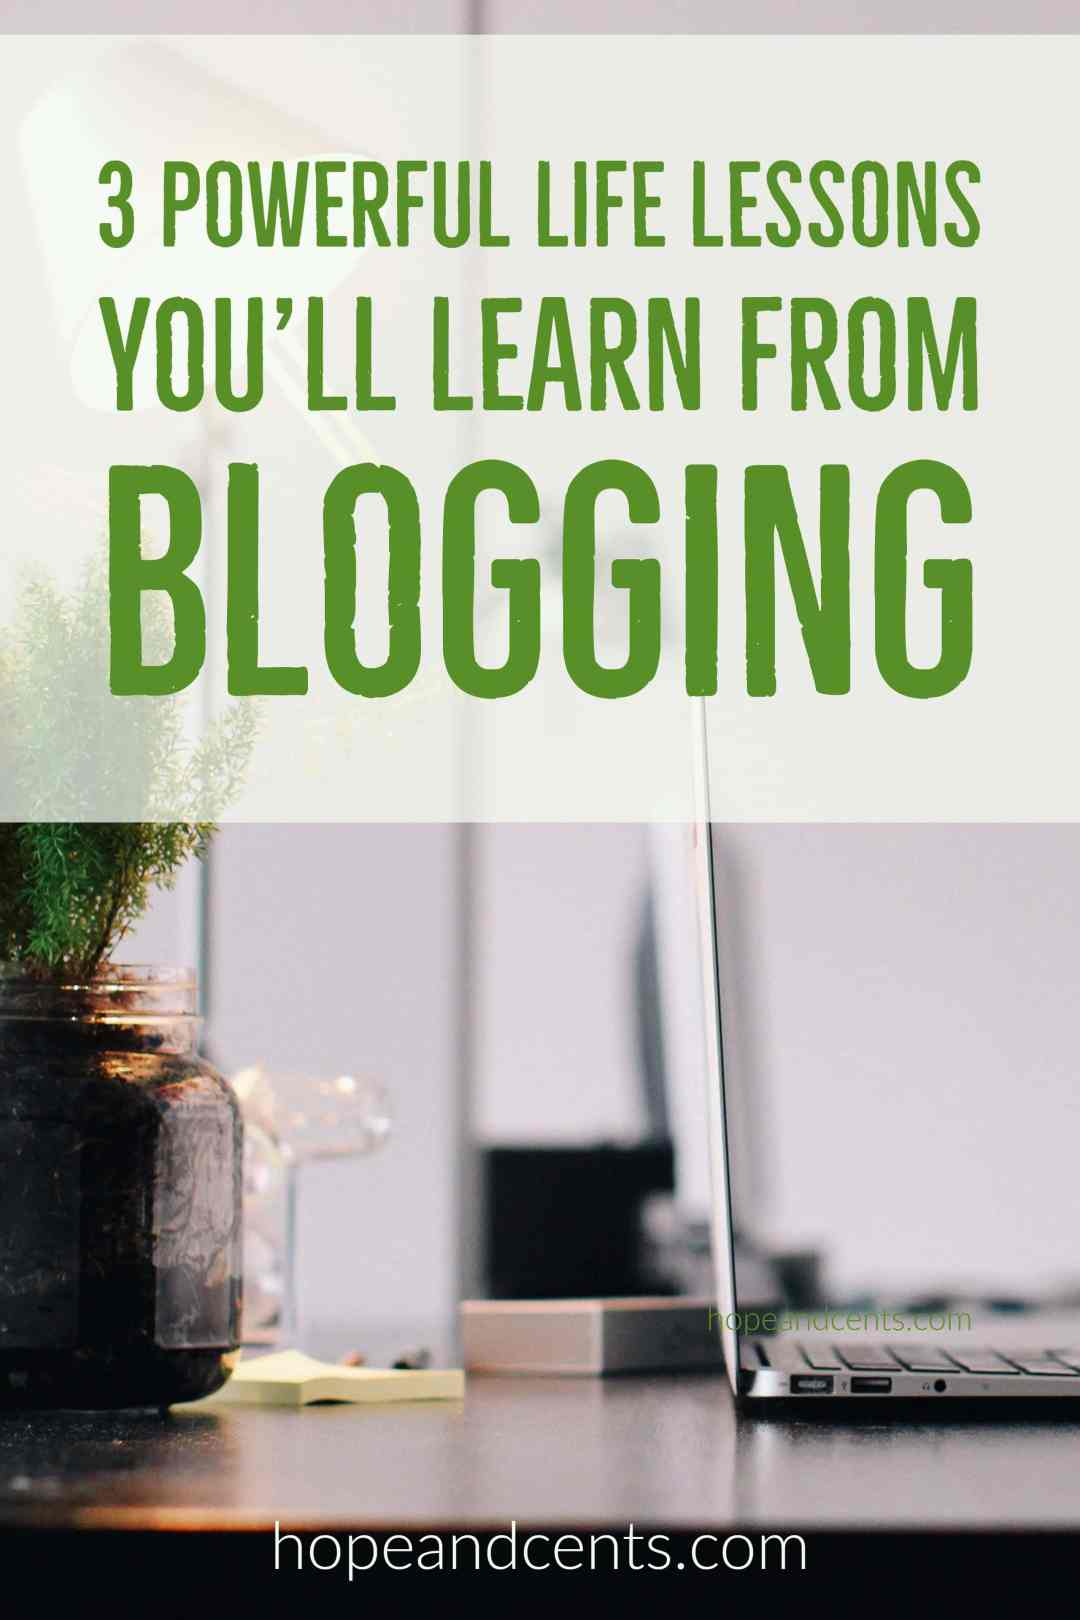 Blogging is like taking a crash course on several topics. But the most impactful lessons you'll learn have nothing to do with blogging at all.